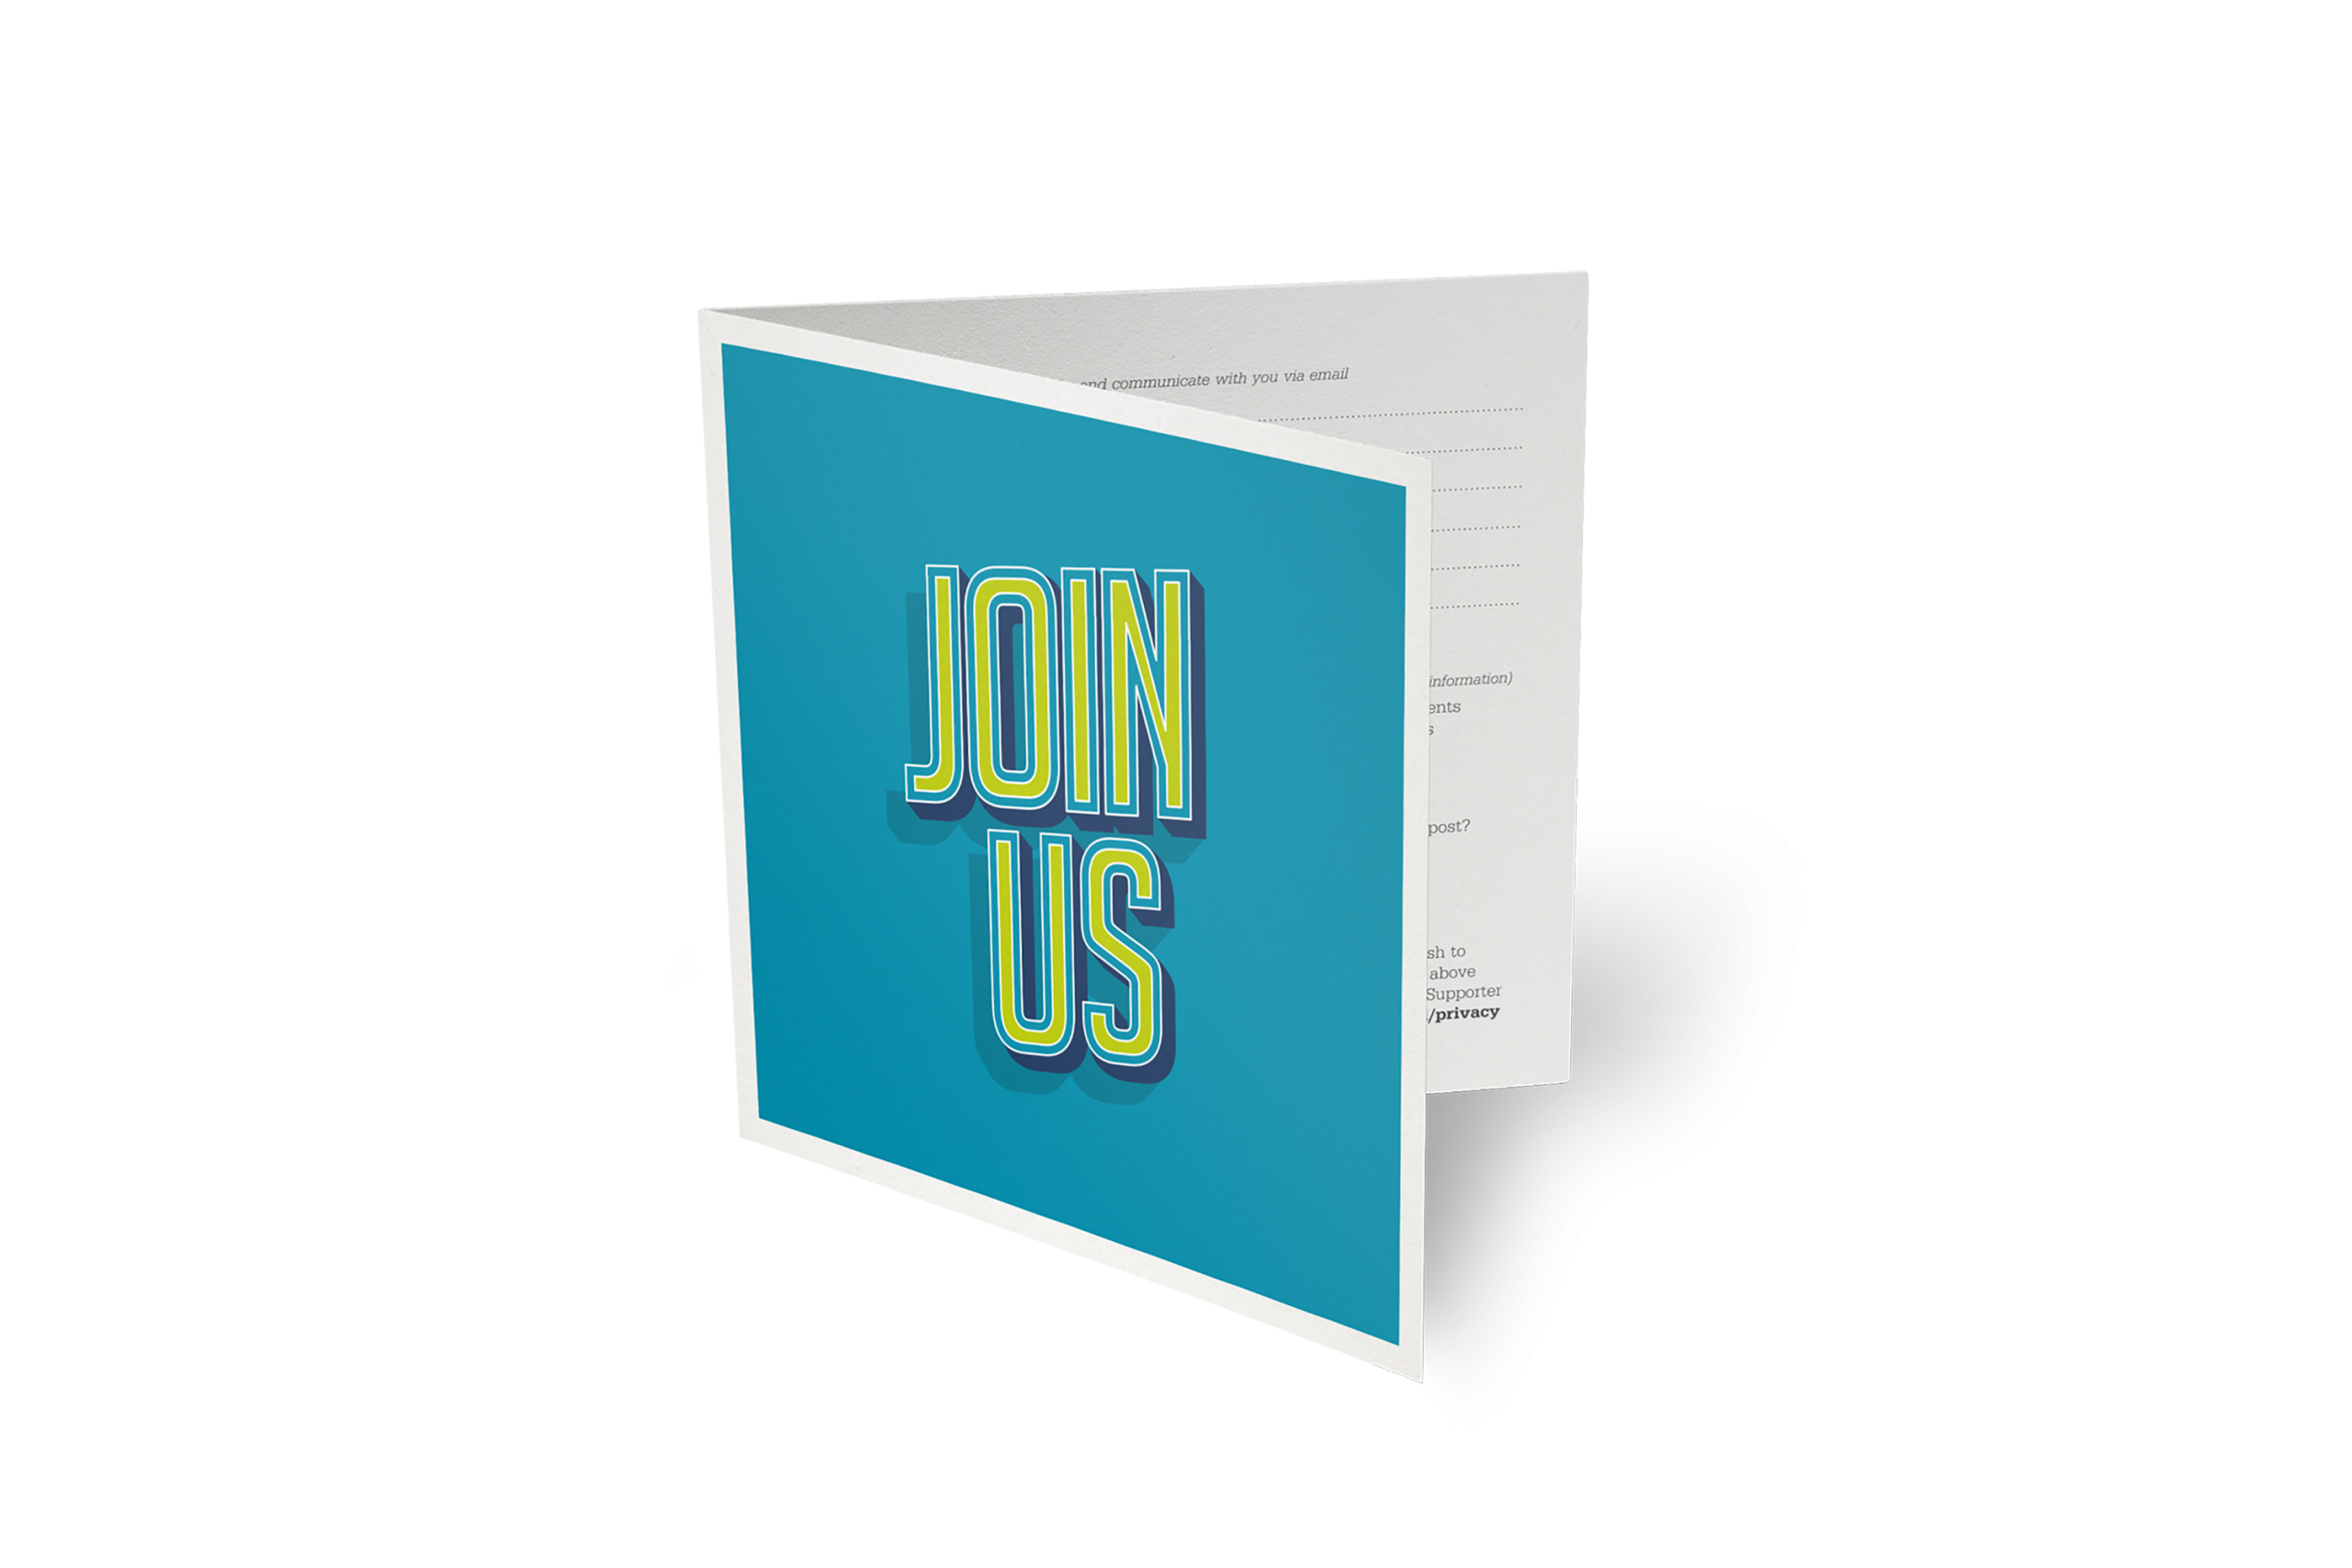 square folded leaflet with 'Join Us' printed on blue background